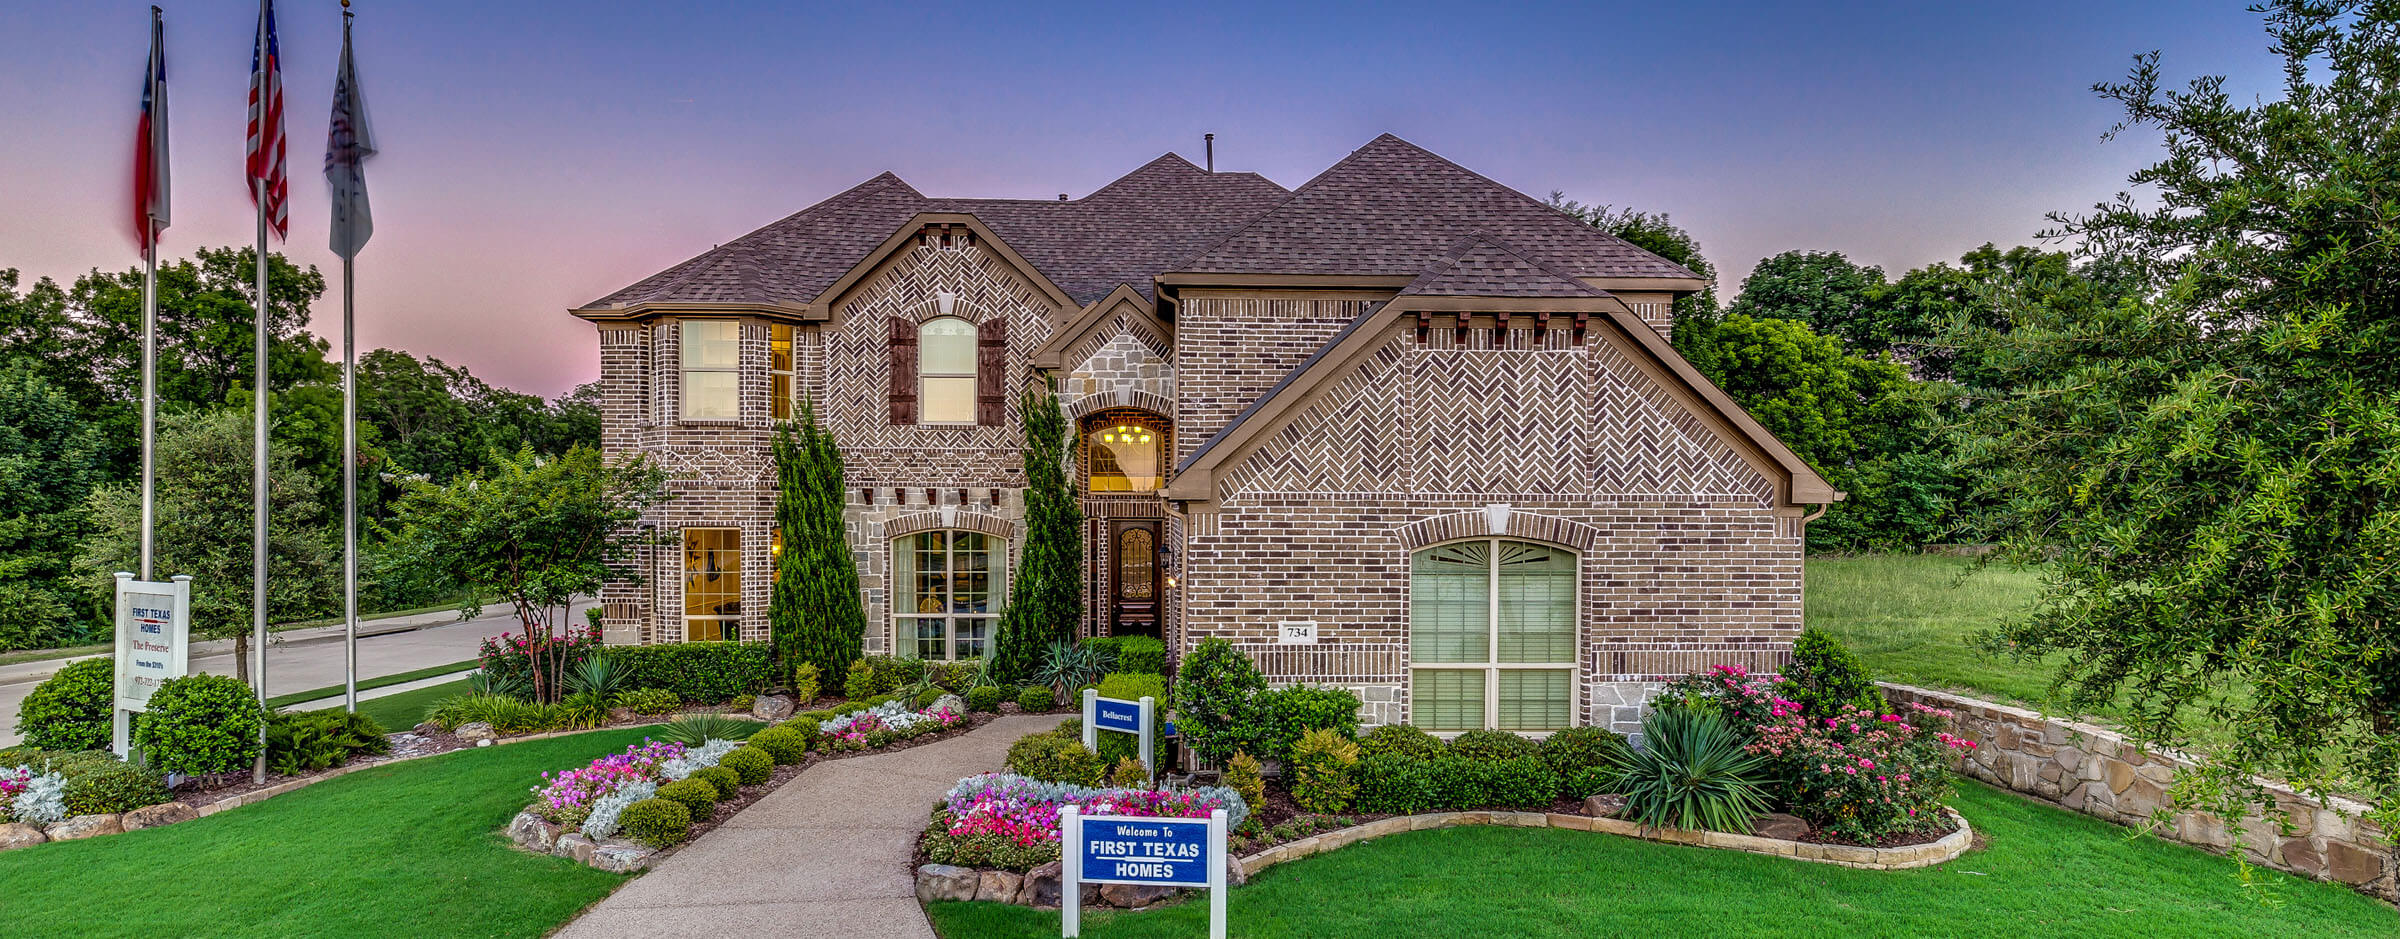 New home builders dallas fort worth tx first texas homes for Texas house builders